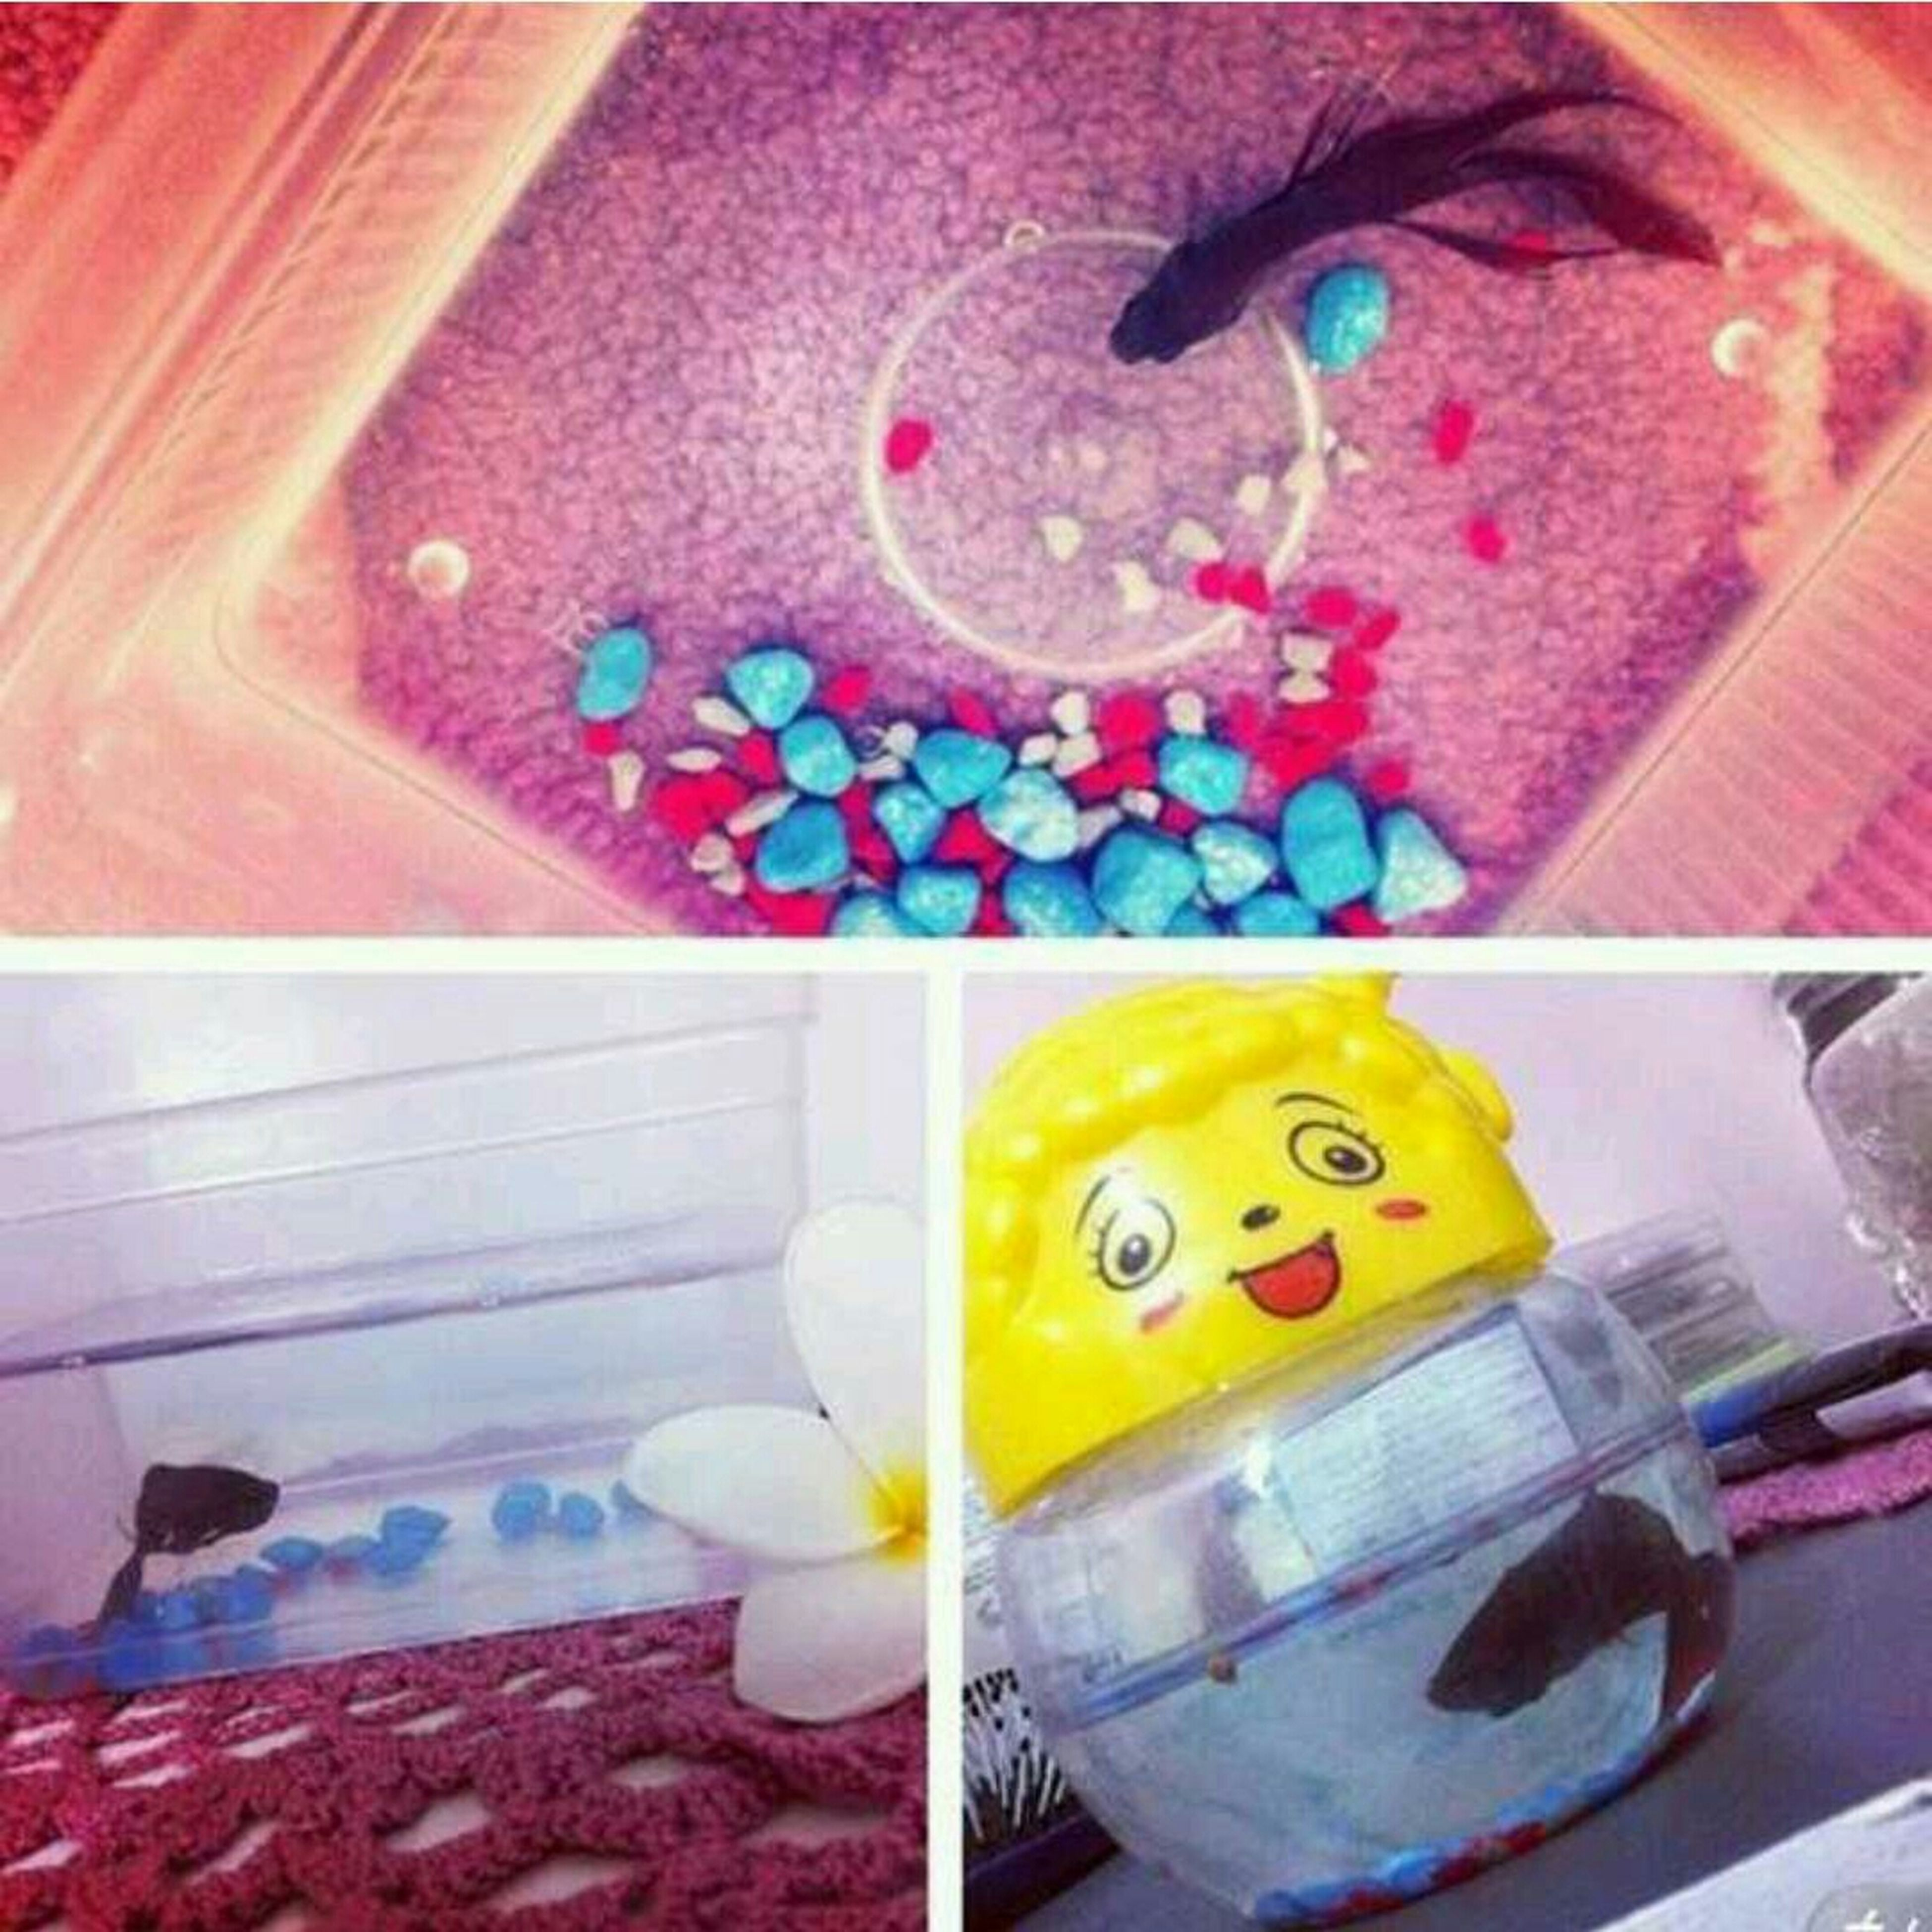 indoors, multi colored, still life, close-up, yellow, colorful, art and craft, high angle view, creativity, no people, art, plastic, blue, table, toy, sweet food, red, pink color, reflection, day